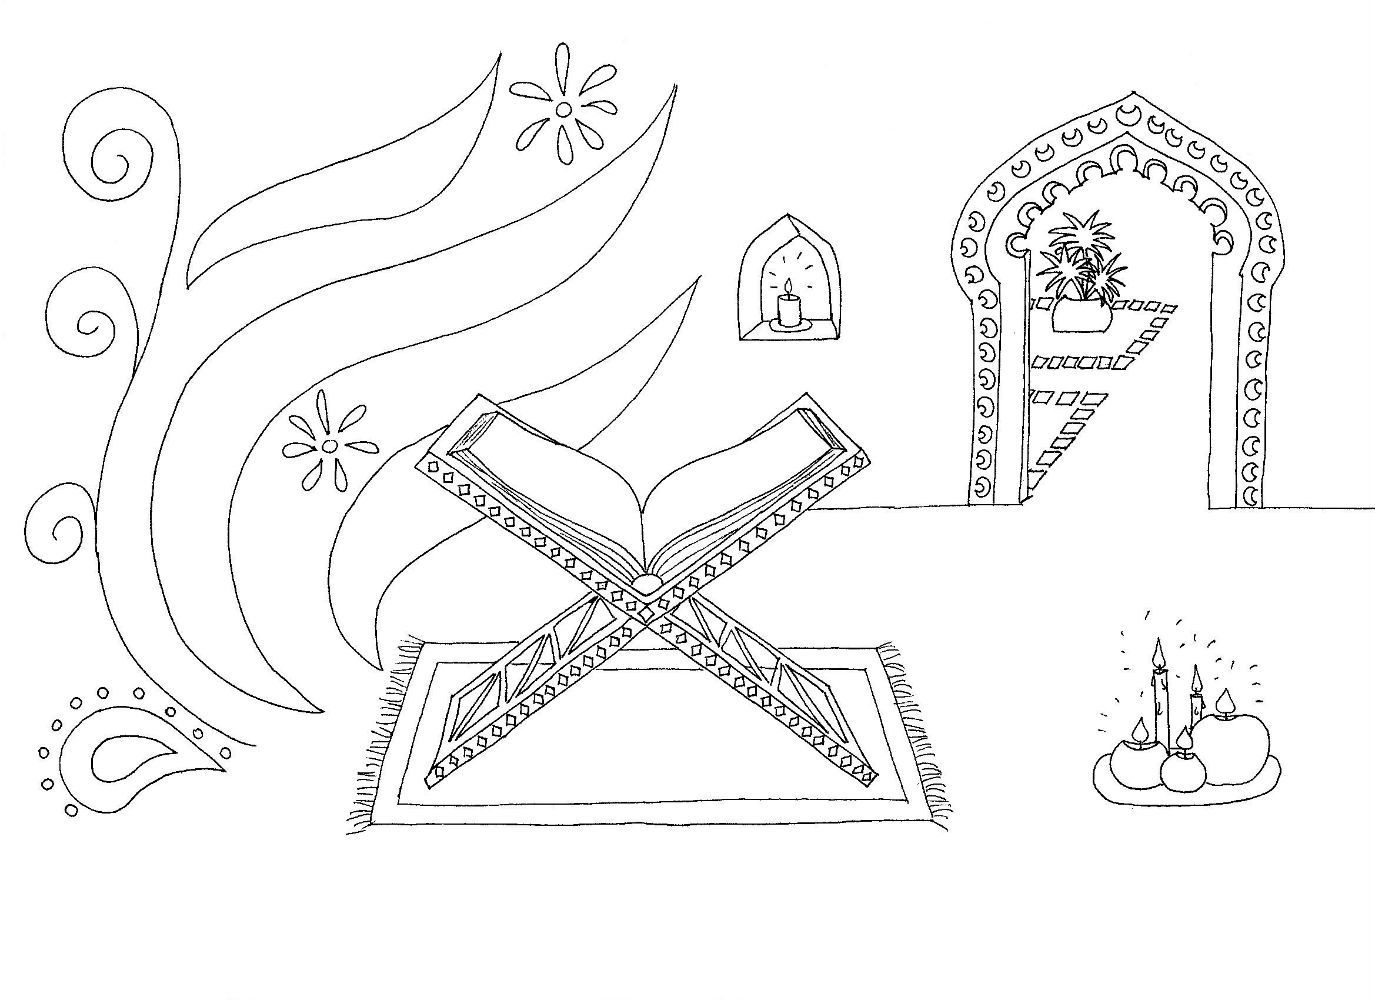 Eid colouring in sheets - Eid Islamic Art Knots Coloring This